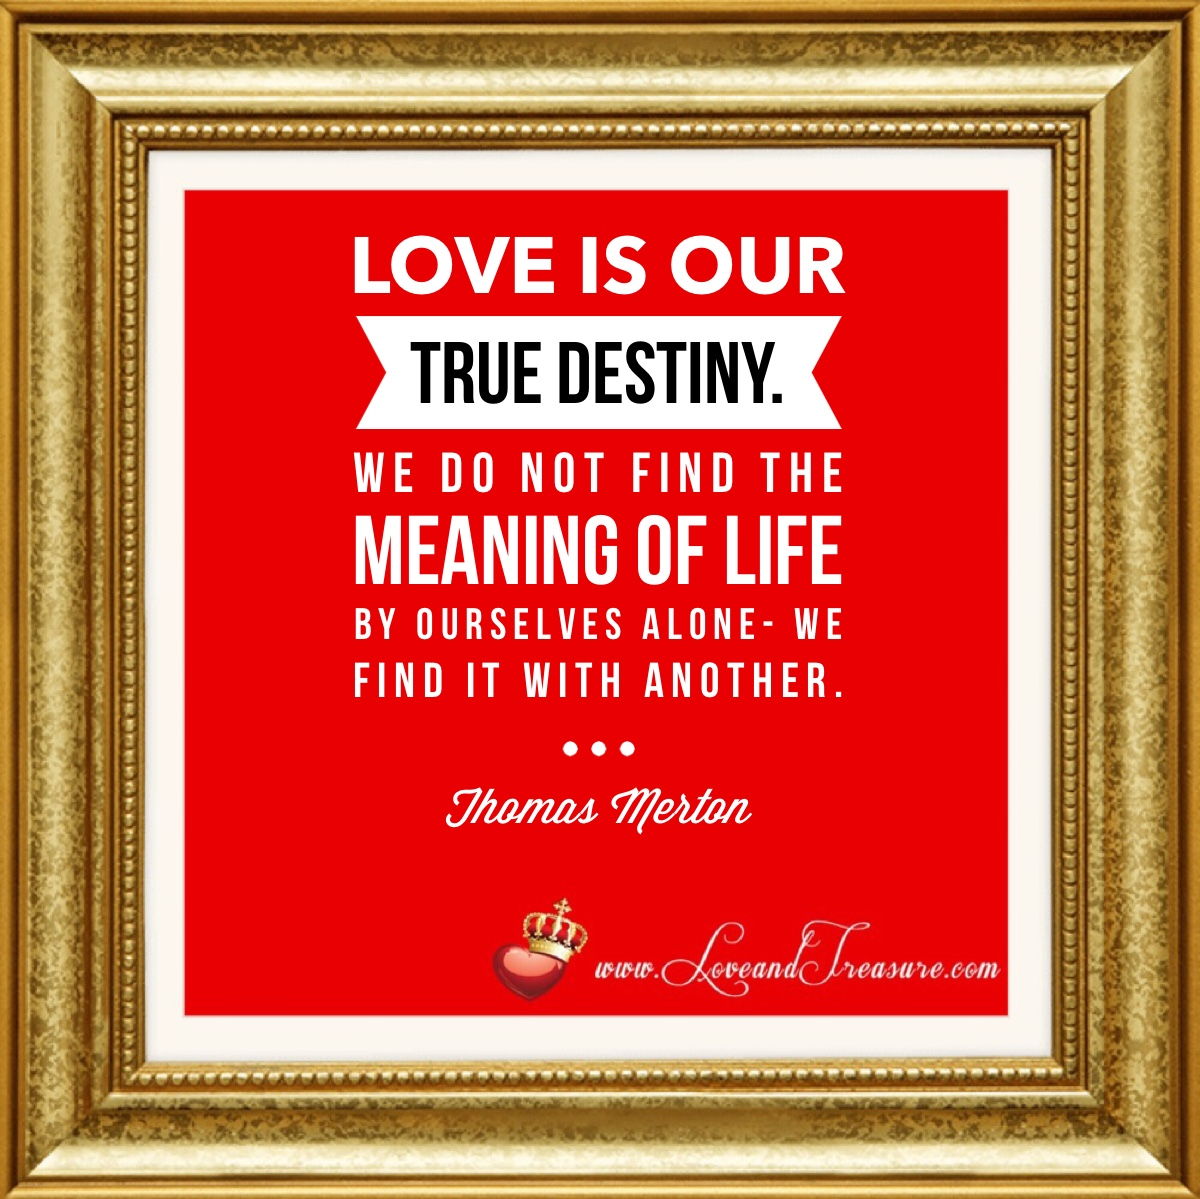 Love is our true destiny we do not find the meaning of life by ourselves alone- we find it with another. -Thomas Merton, www.loveandtreasure.com, love and treasure, what is love? #love